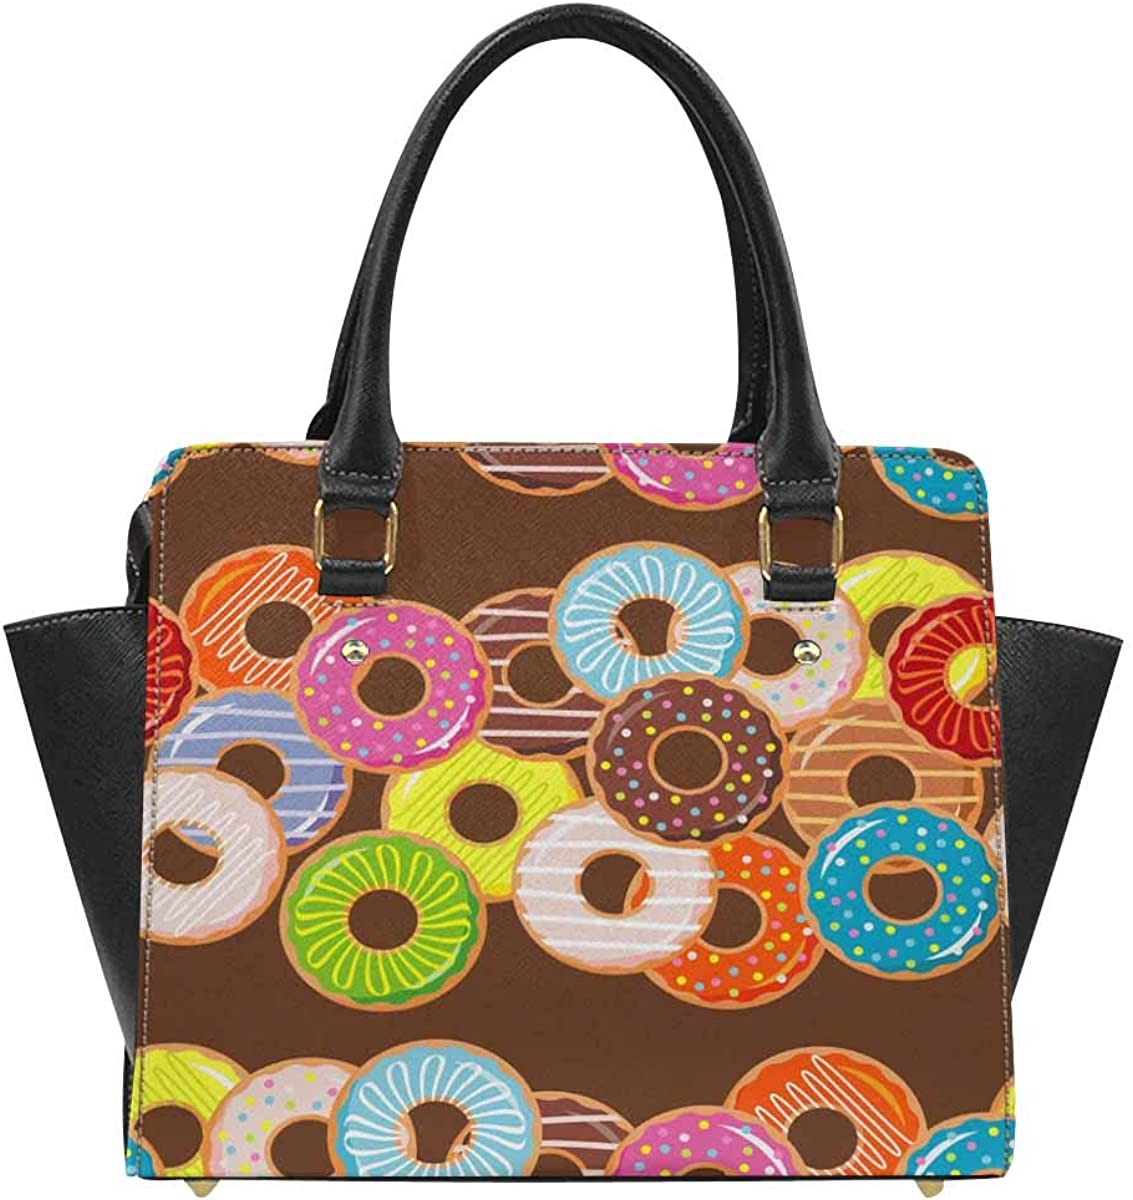 B07RWZLXDJ InterestPrint Colorful Donuts Handbags Tote Bag Shoulder Bag Top Handle Satchel Purse 61BUbhqLVDL